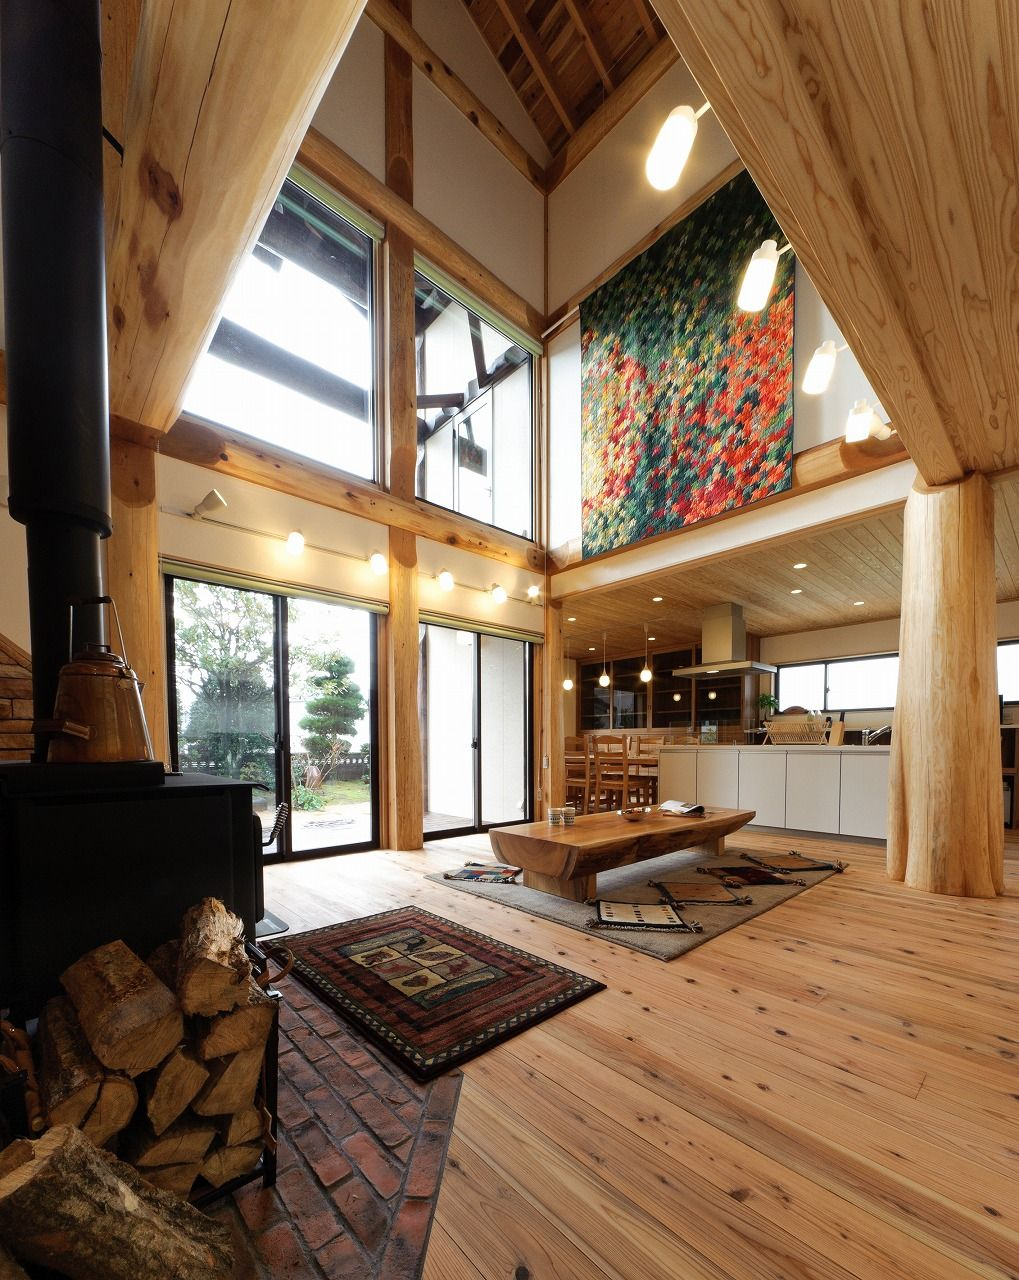 Moore Log And Timber Homes Japanese Post And Beam Japanese Interior Modern Japanese Interior Japanese Interior Design